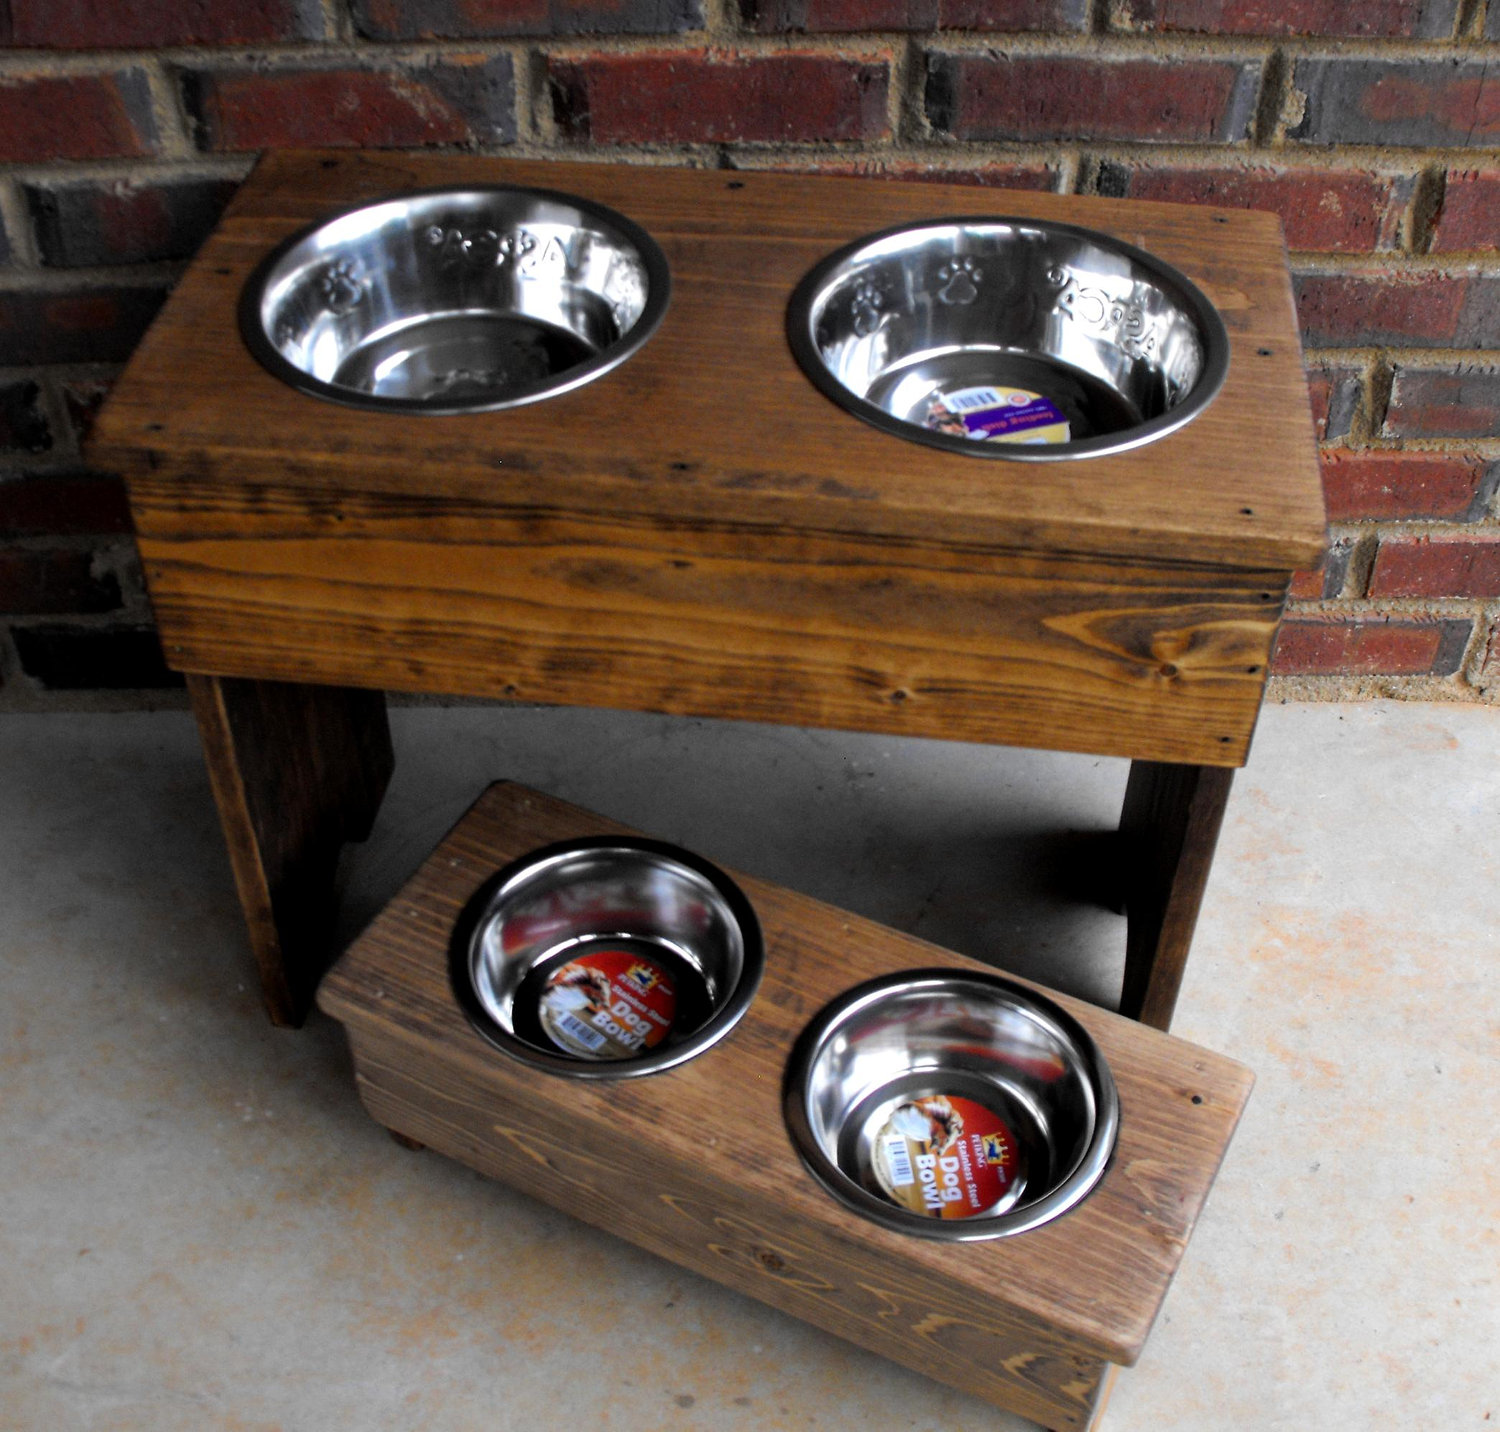 double feeder raised diner bowl bronze included store stainless wrought bowls dog steel noblesse single iron pet